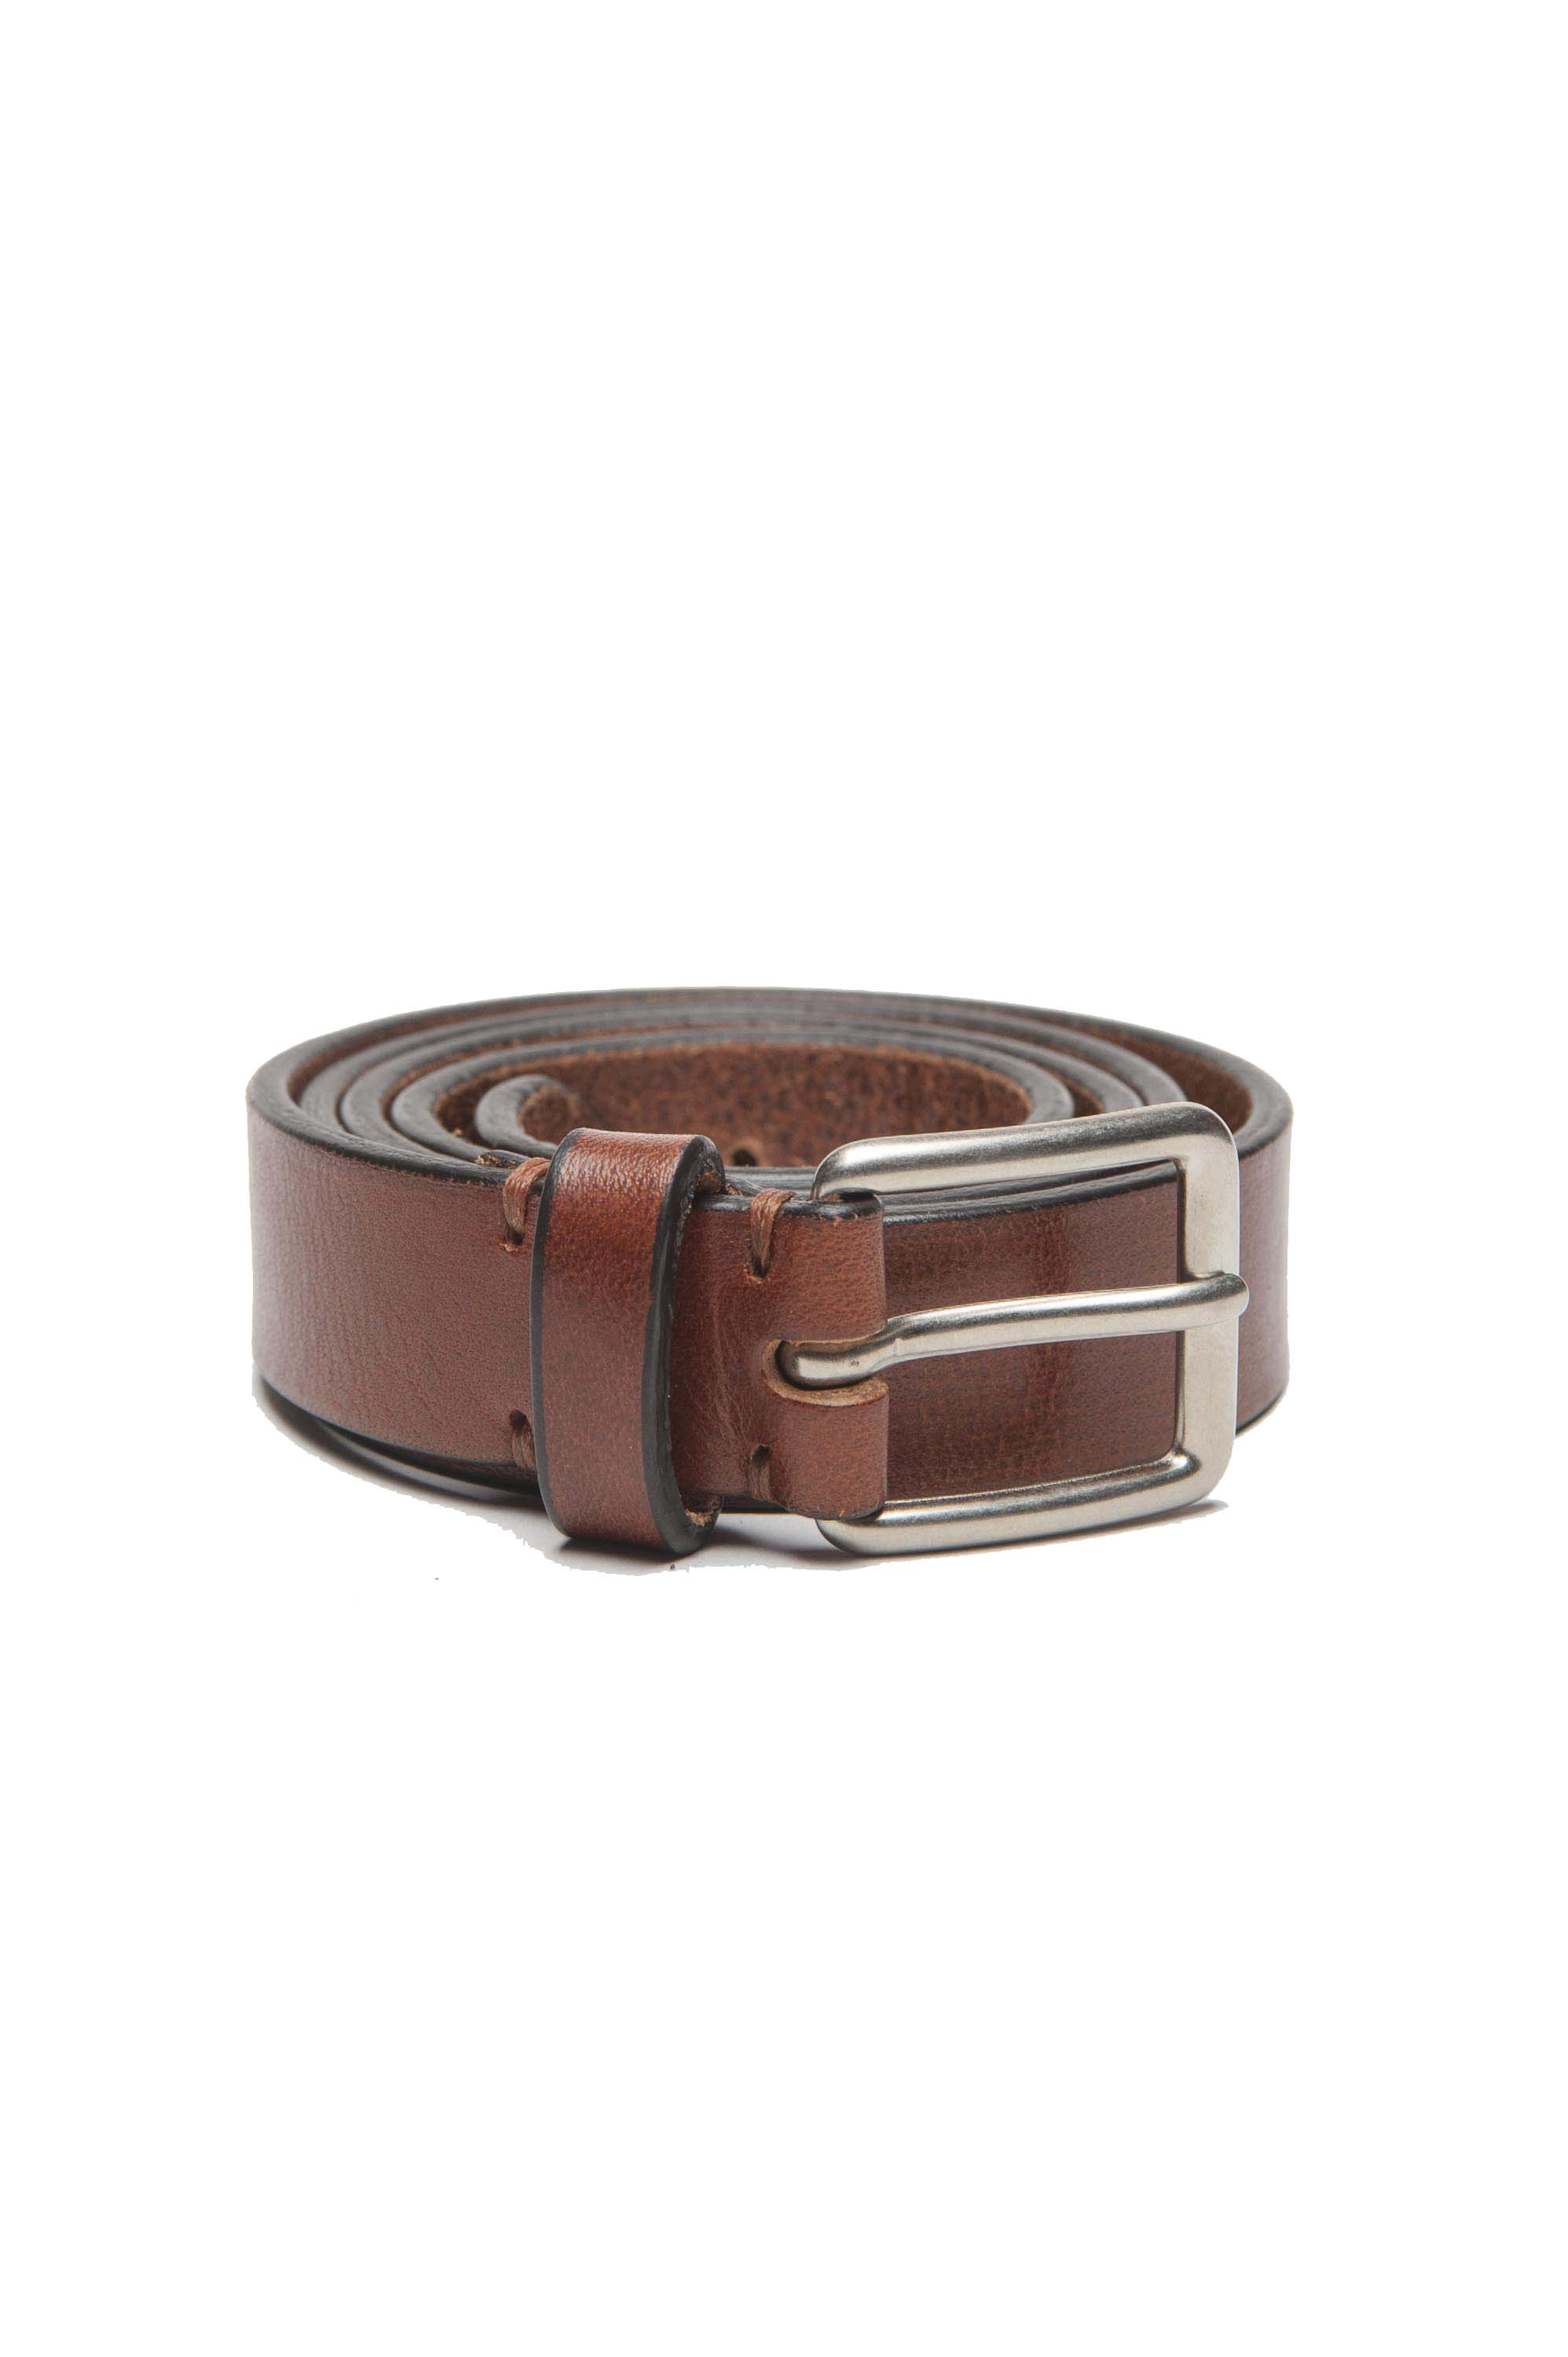 SBU 01252_19AW Classic belt in natural calfskin leather 0.9 inches 01